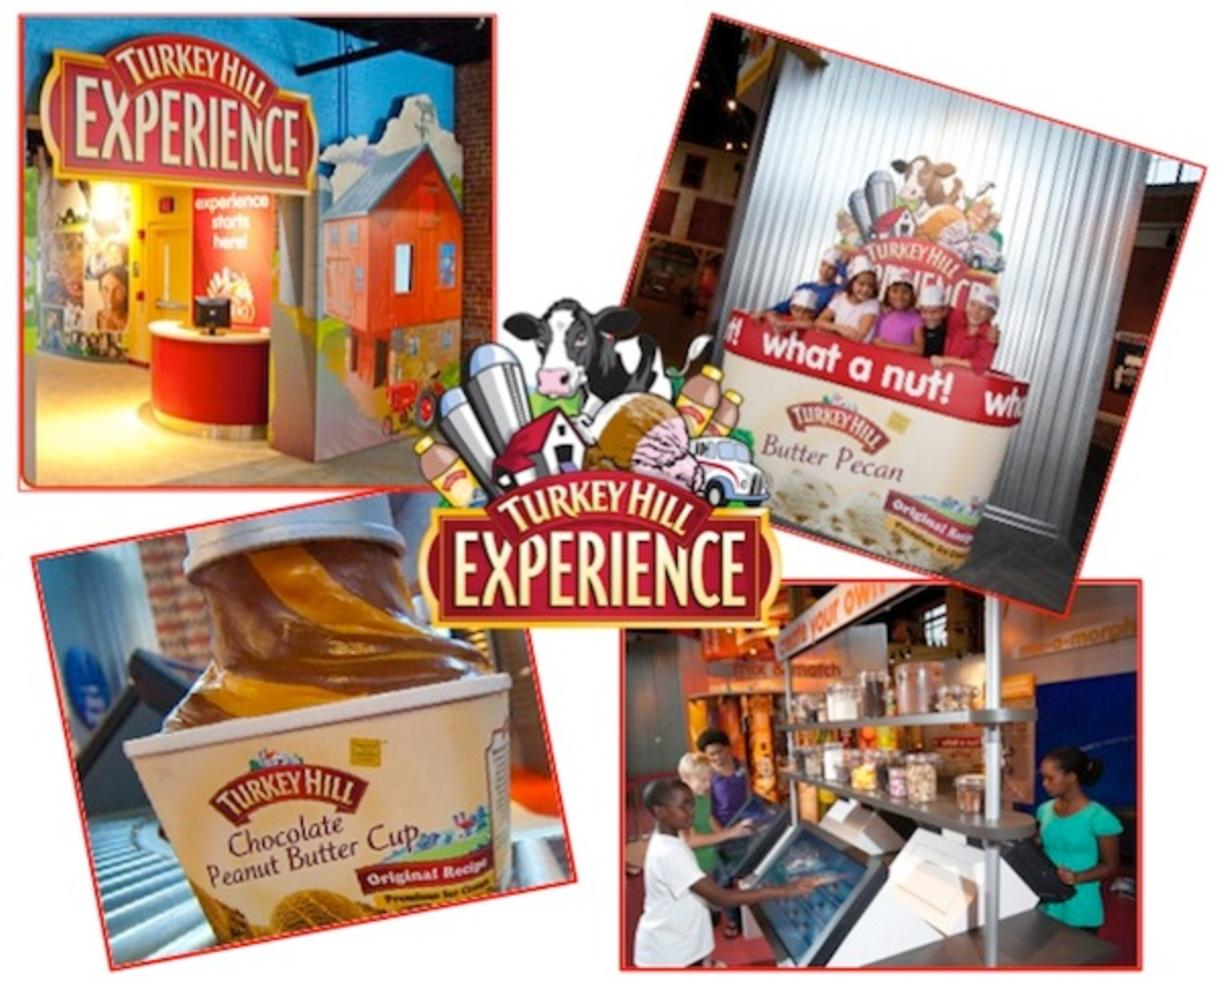 $7 for Turkey Hill Experience Admission - ICE CREAM!! (40% off)